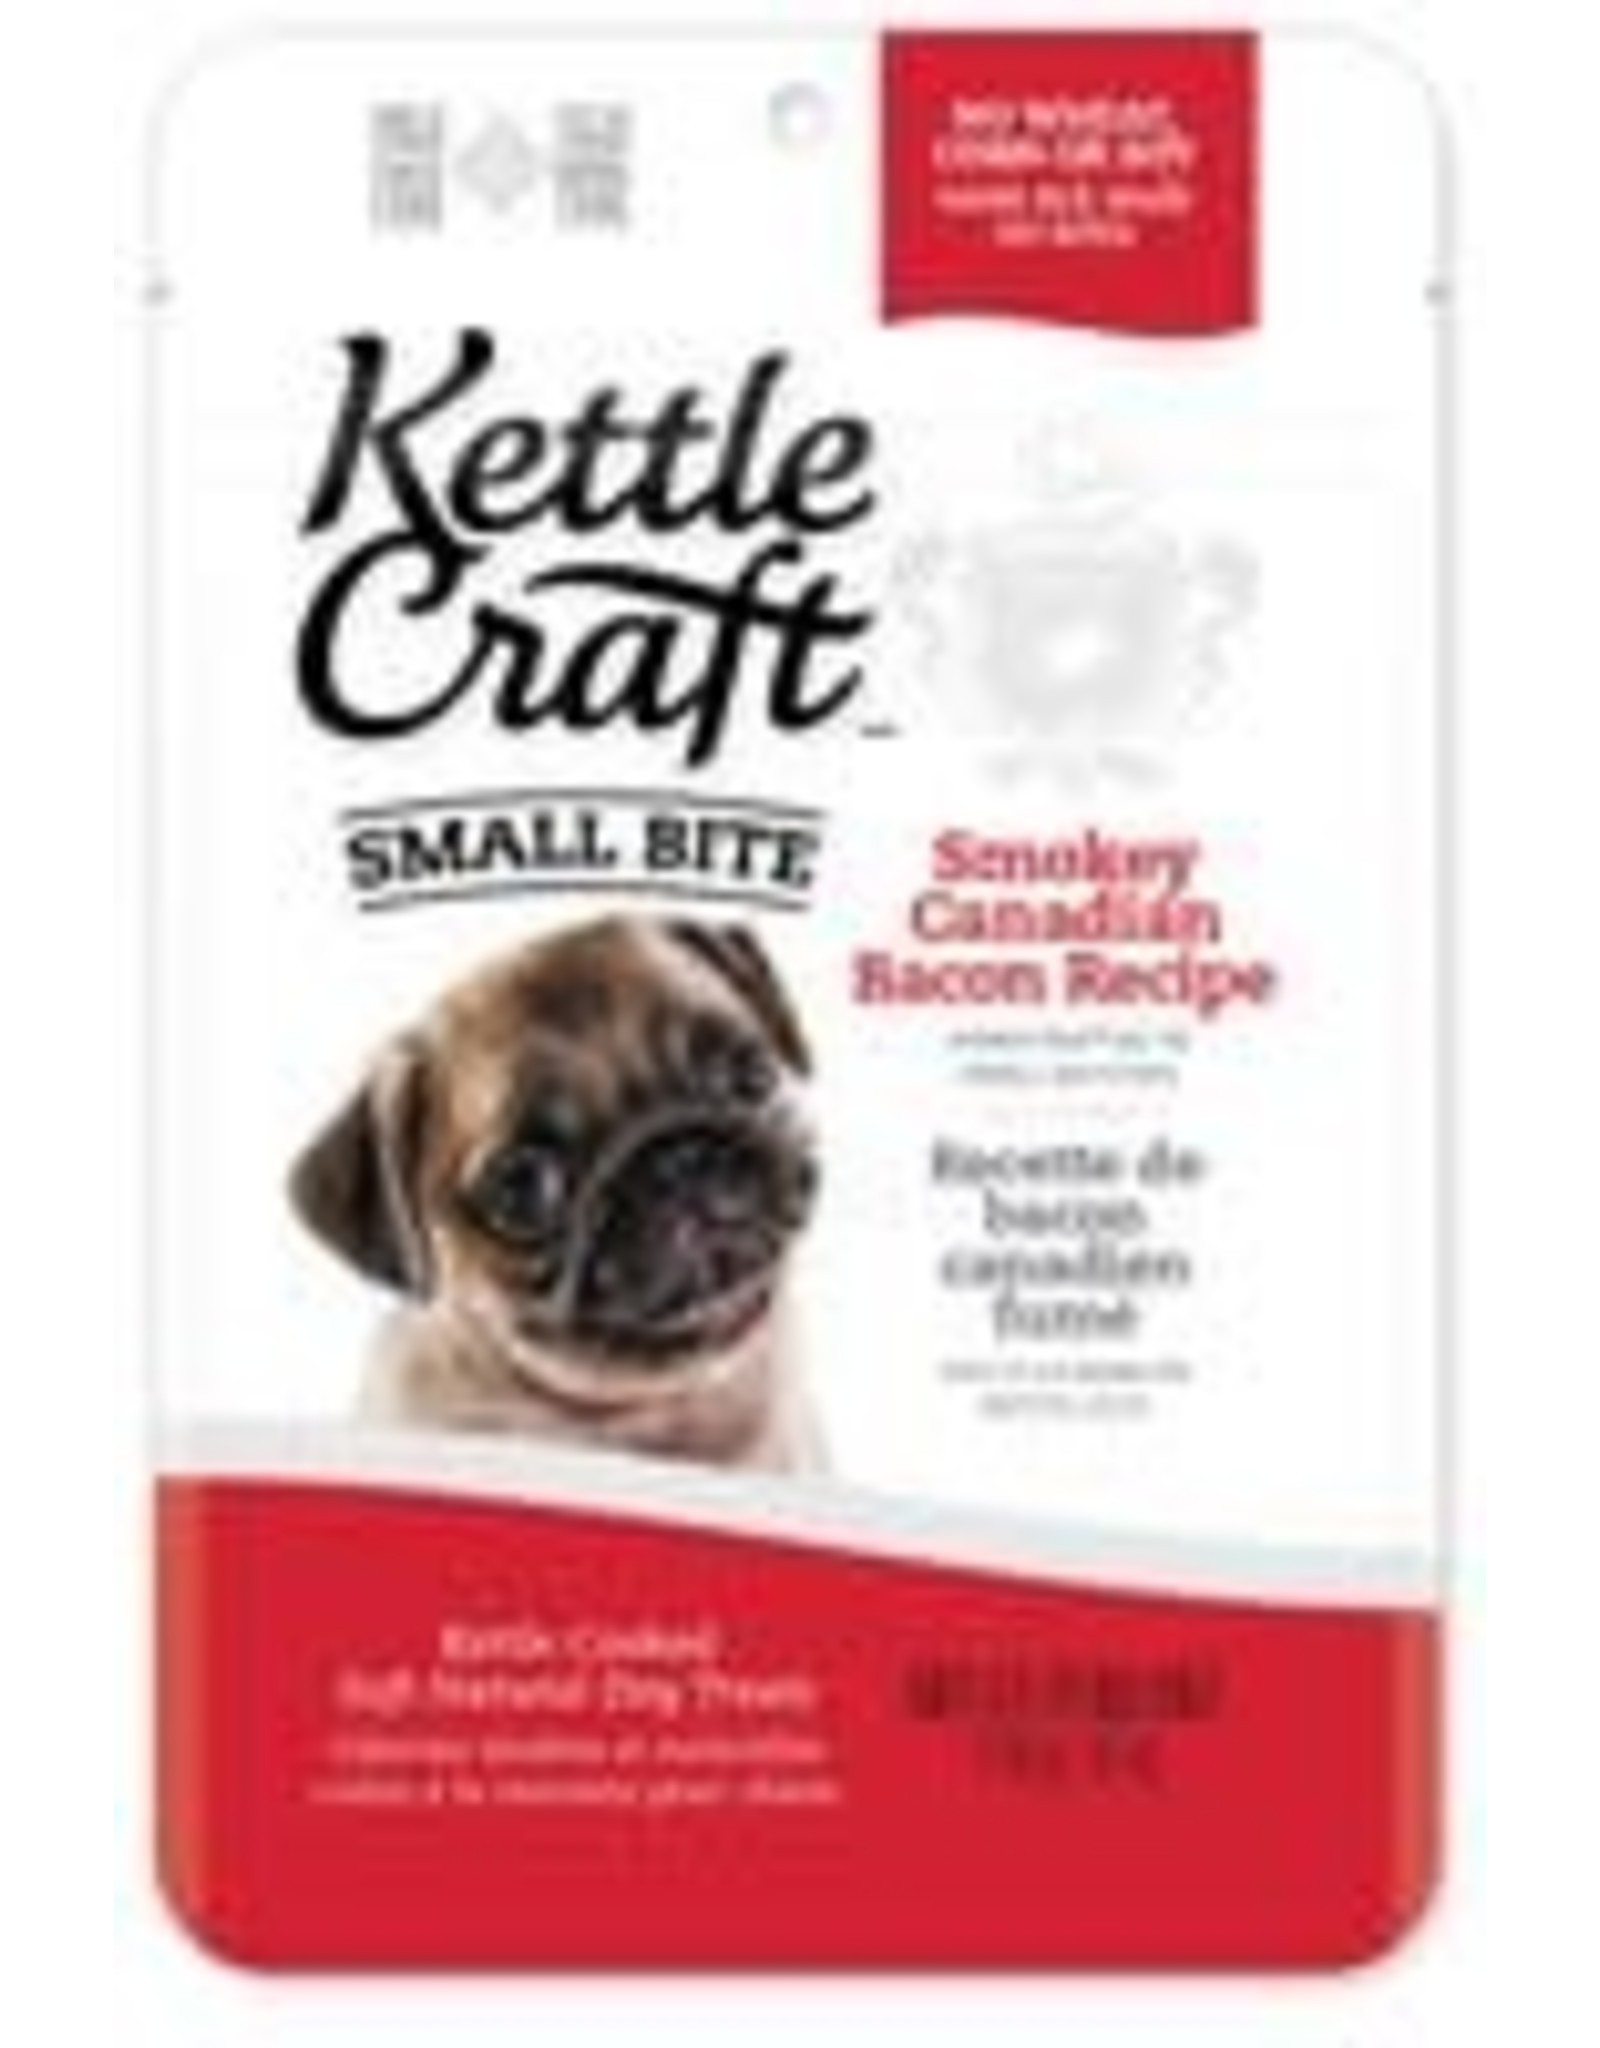 Kettle Craft K.C. Dog - Smokey Canadian Bacon -small bite 170g